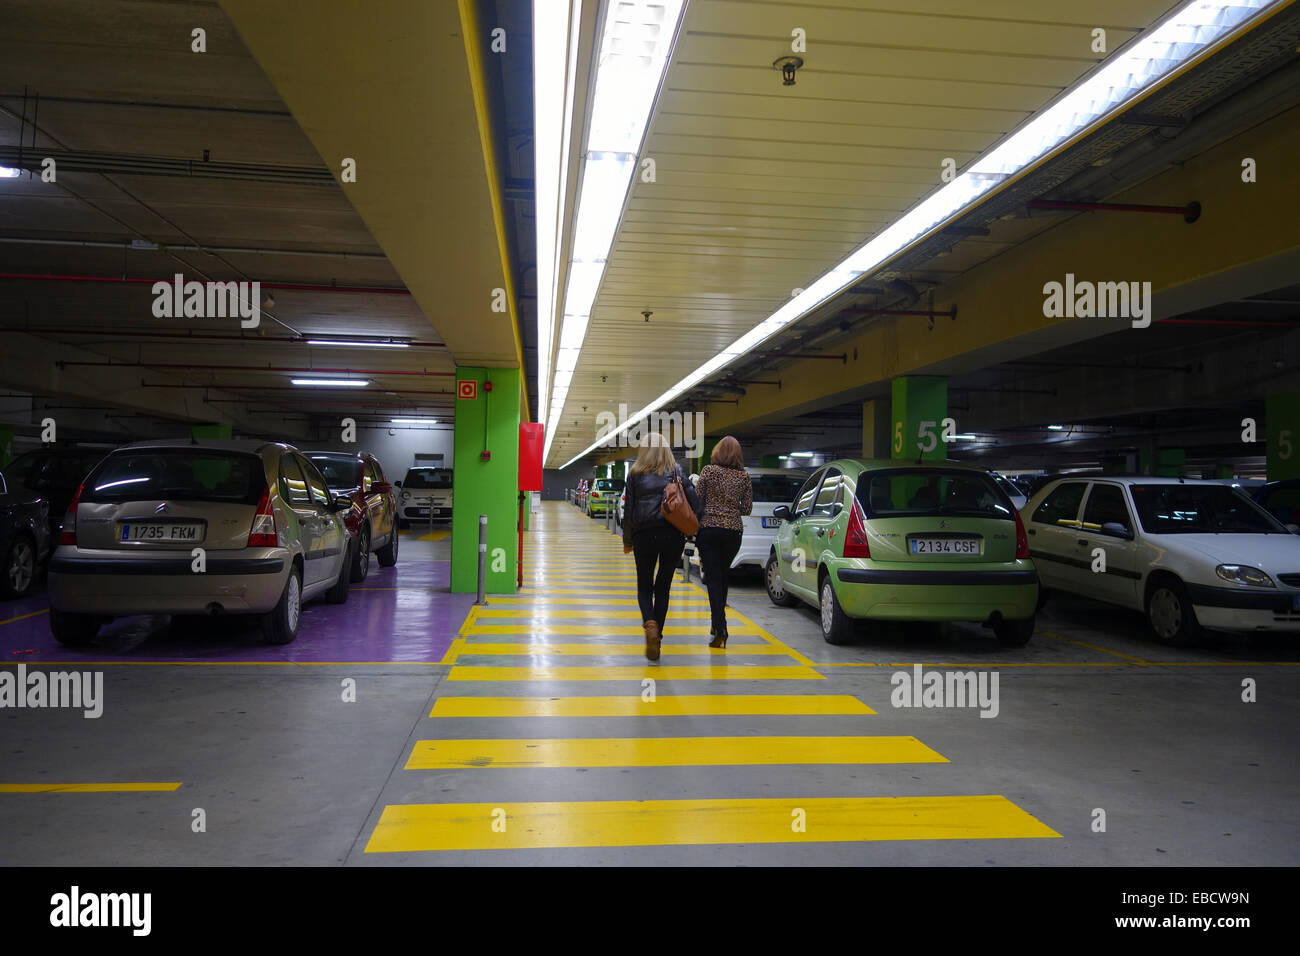 Two women walk in Underground Parking House with Parked cars, yellow dark. Spain - Stock Image